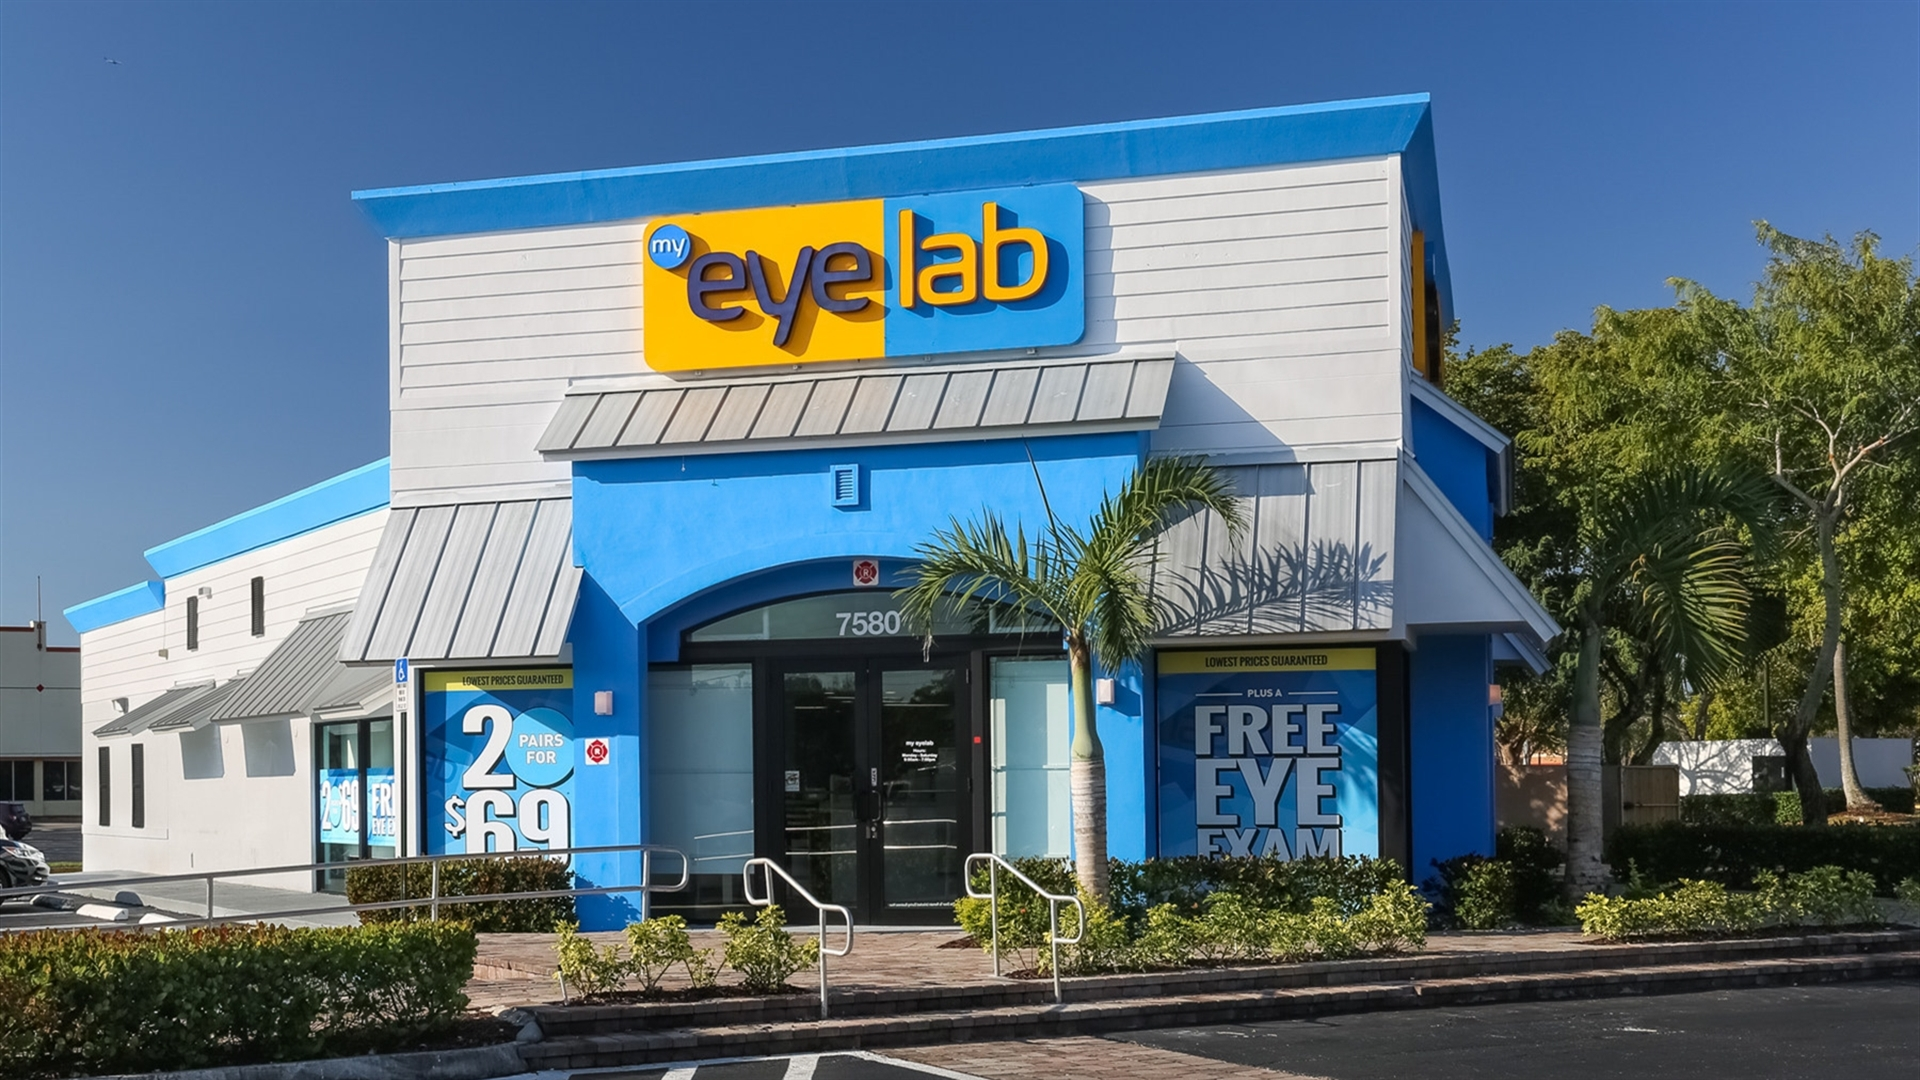 My Eyelab Lands Another Multi Unit Franchise Agreement In Florida